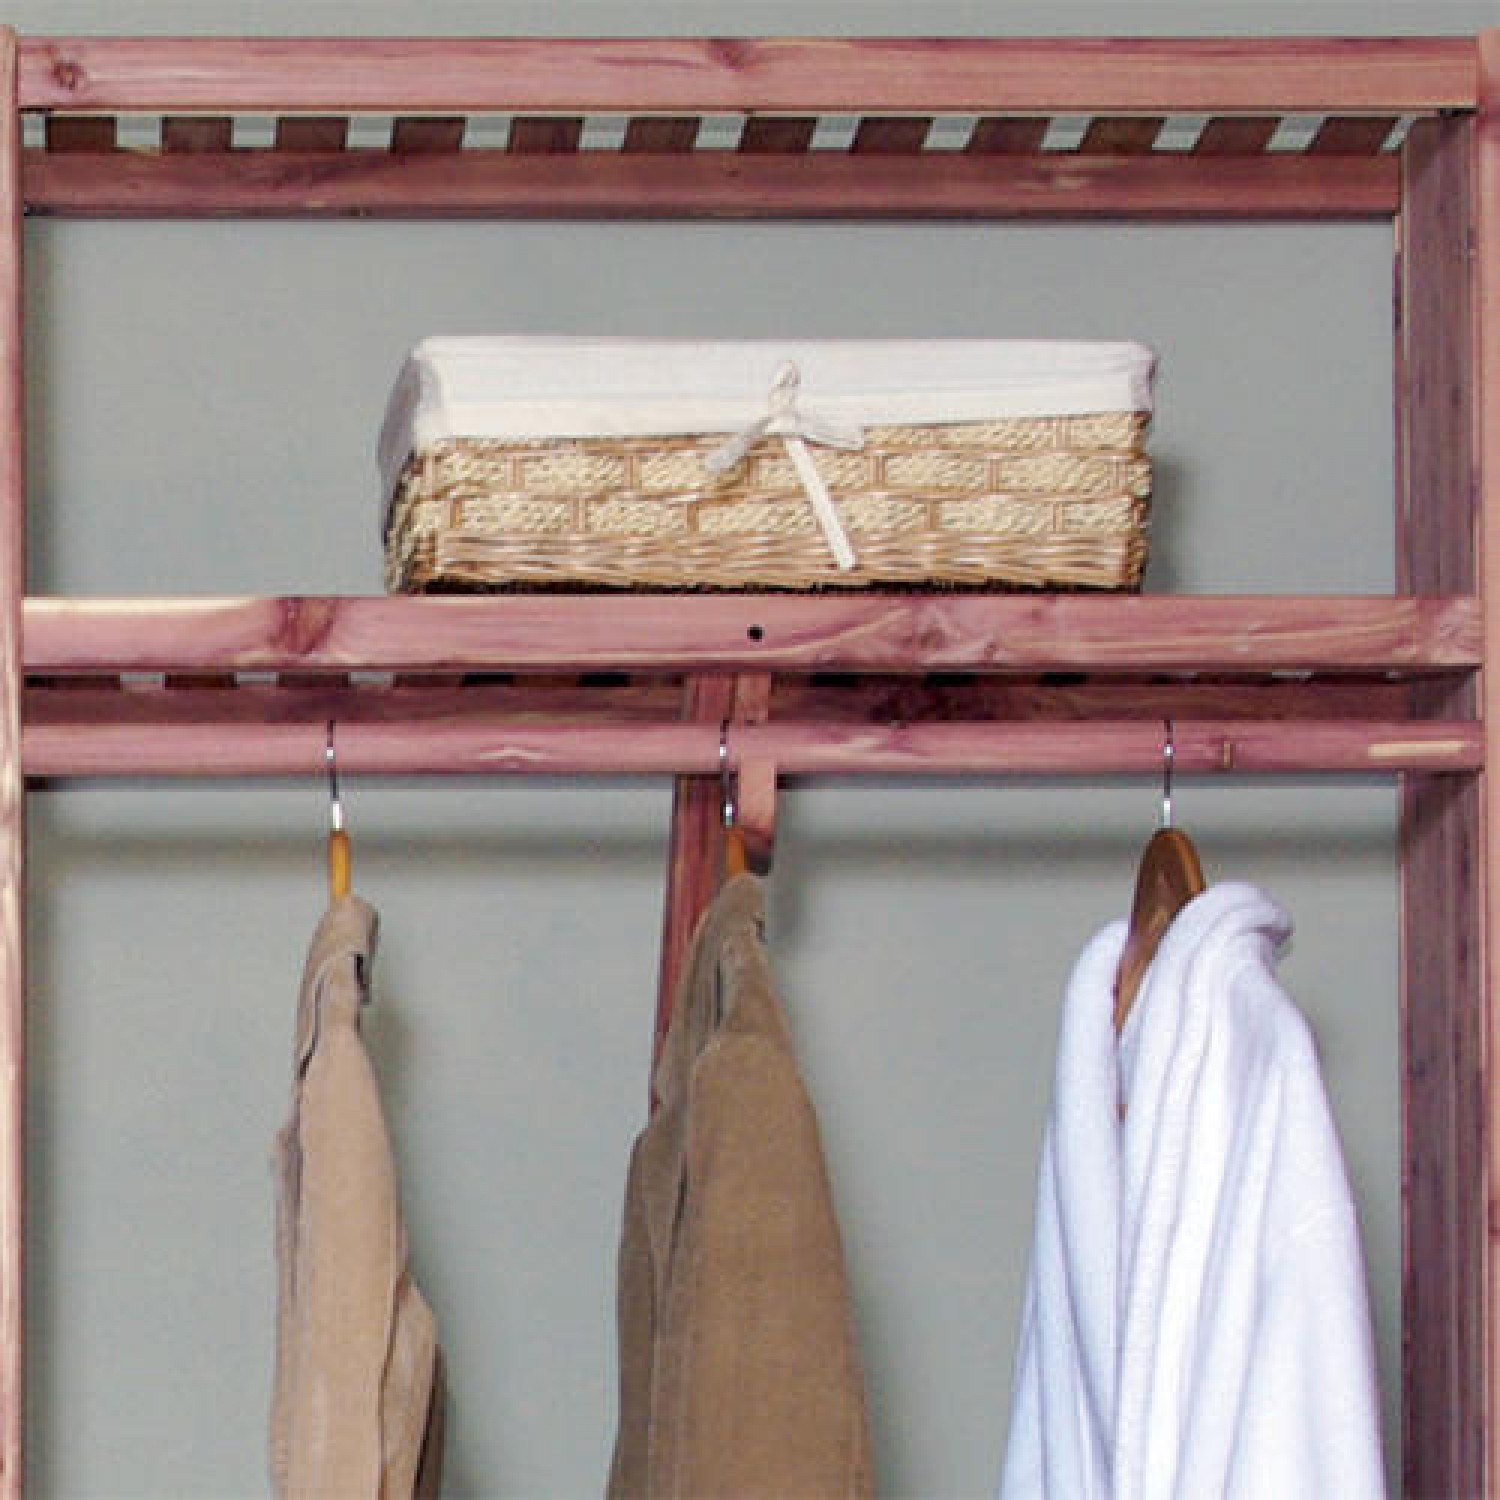 Cedar Flooring for Closets | Aromatic Cedar Closet | Cedar Closet Kit